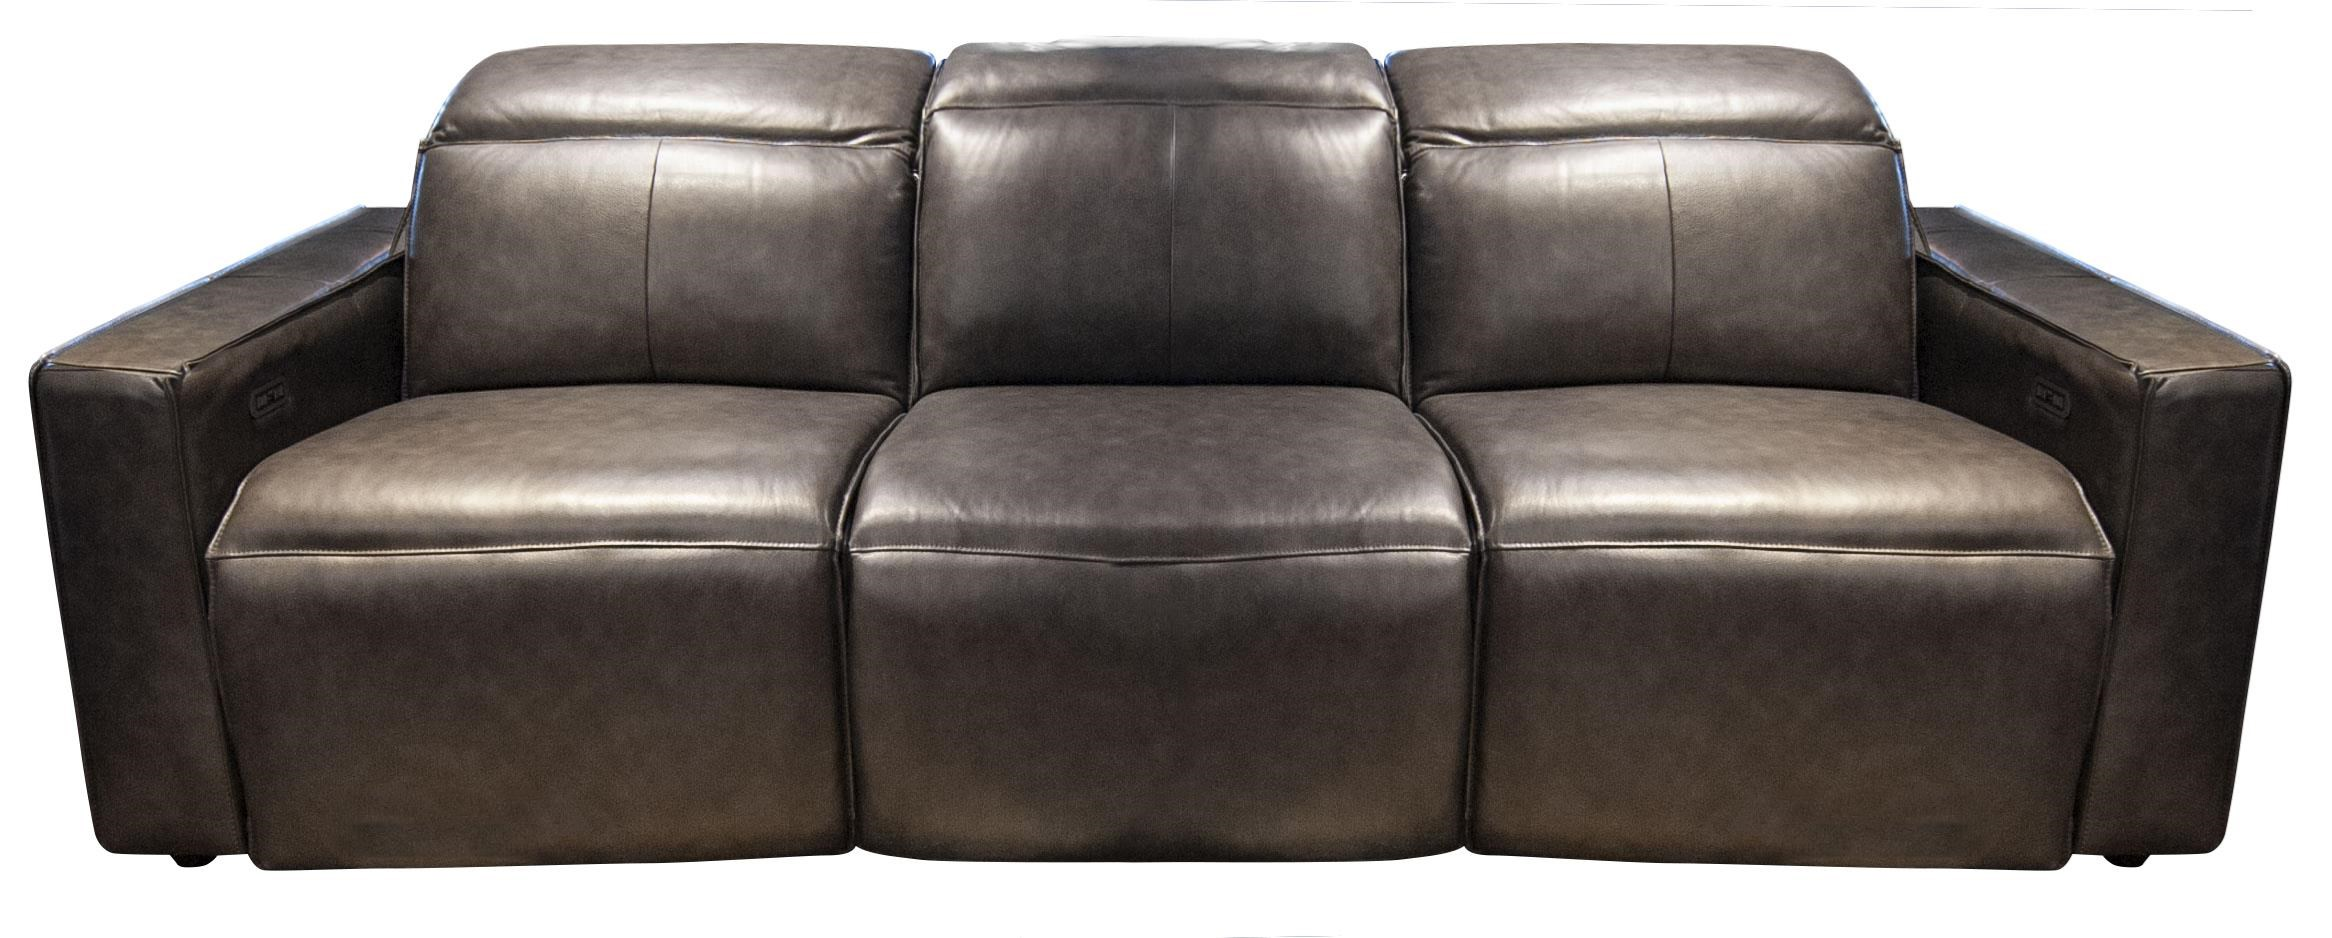 Mylie Mylie Power Leather Match Sofa by Abbyson at Morris Home